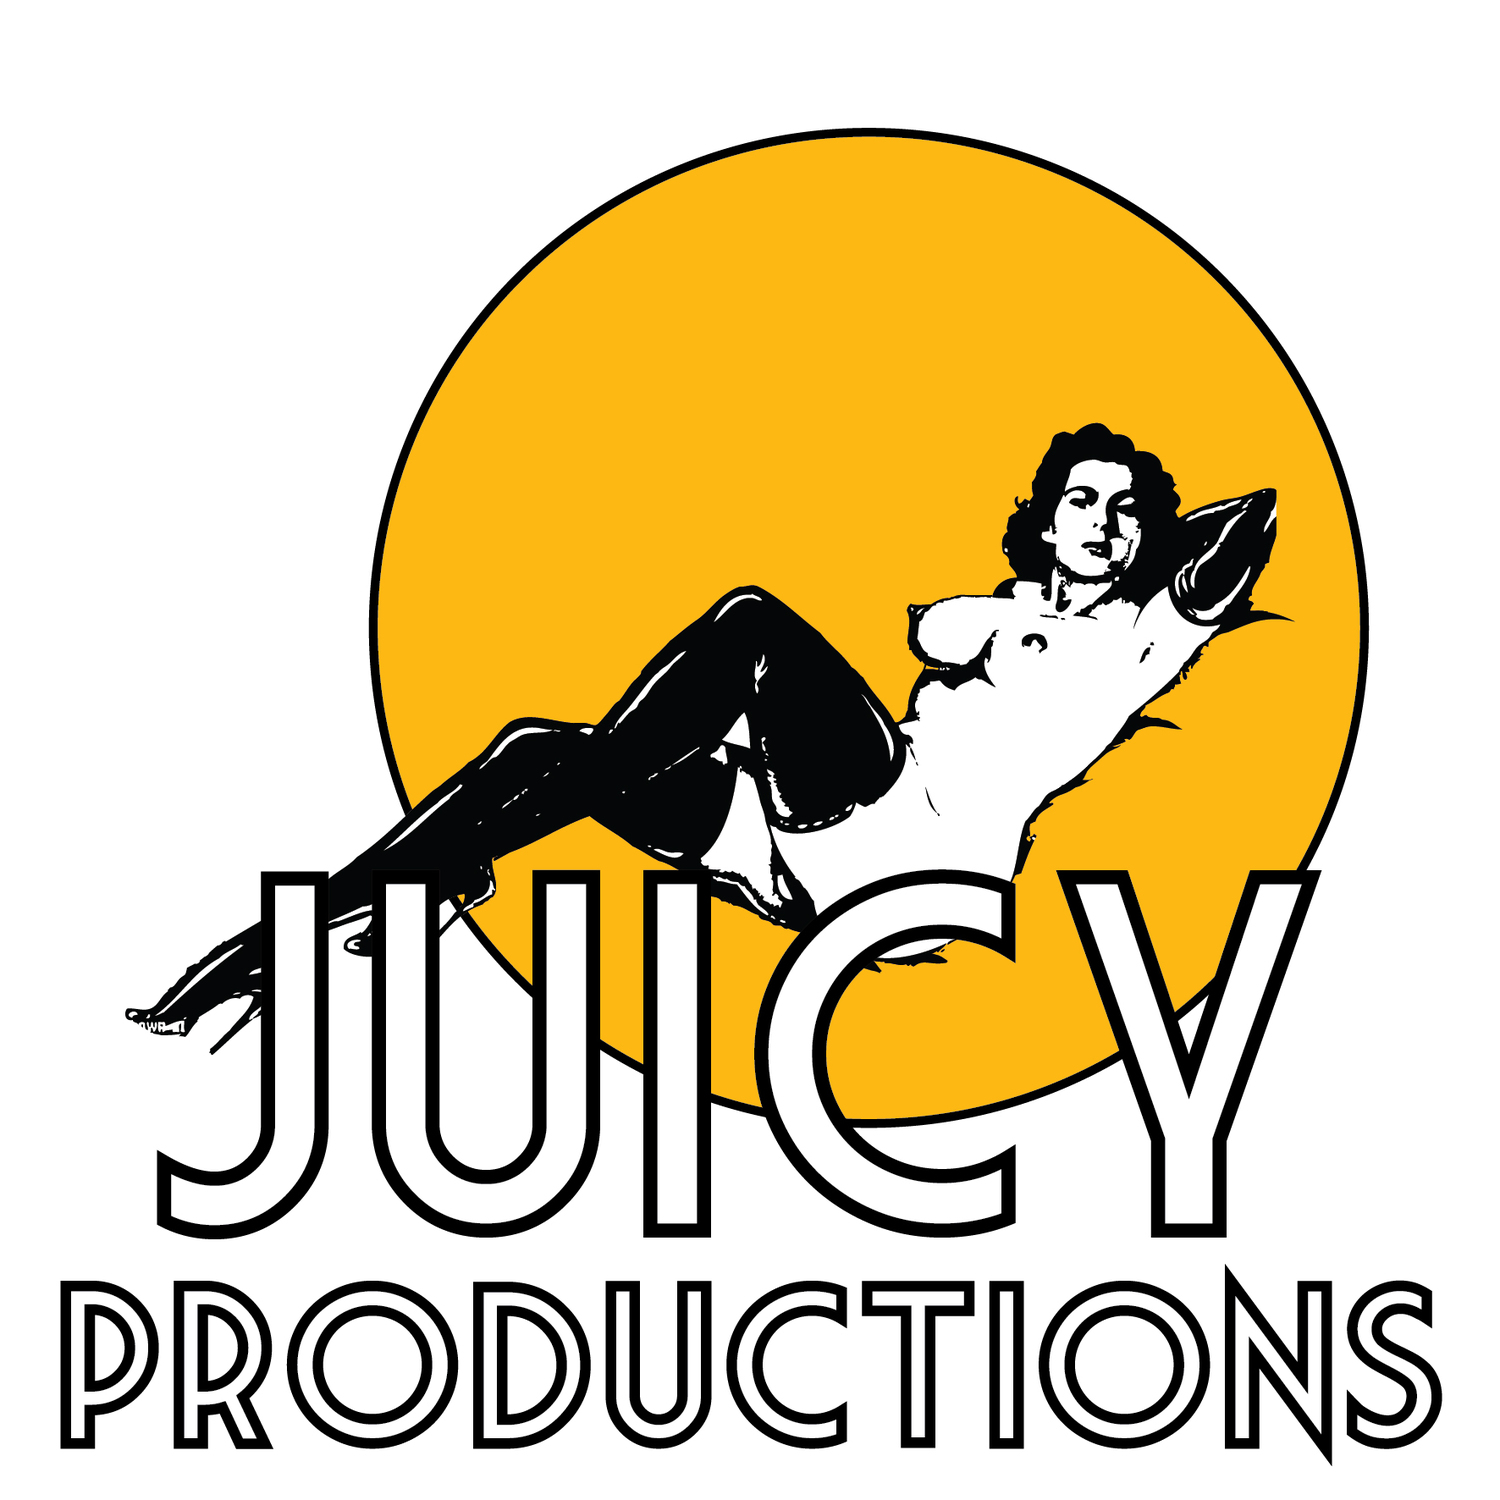 Juicy Productions Ltd